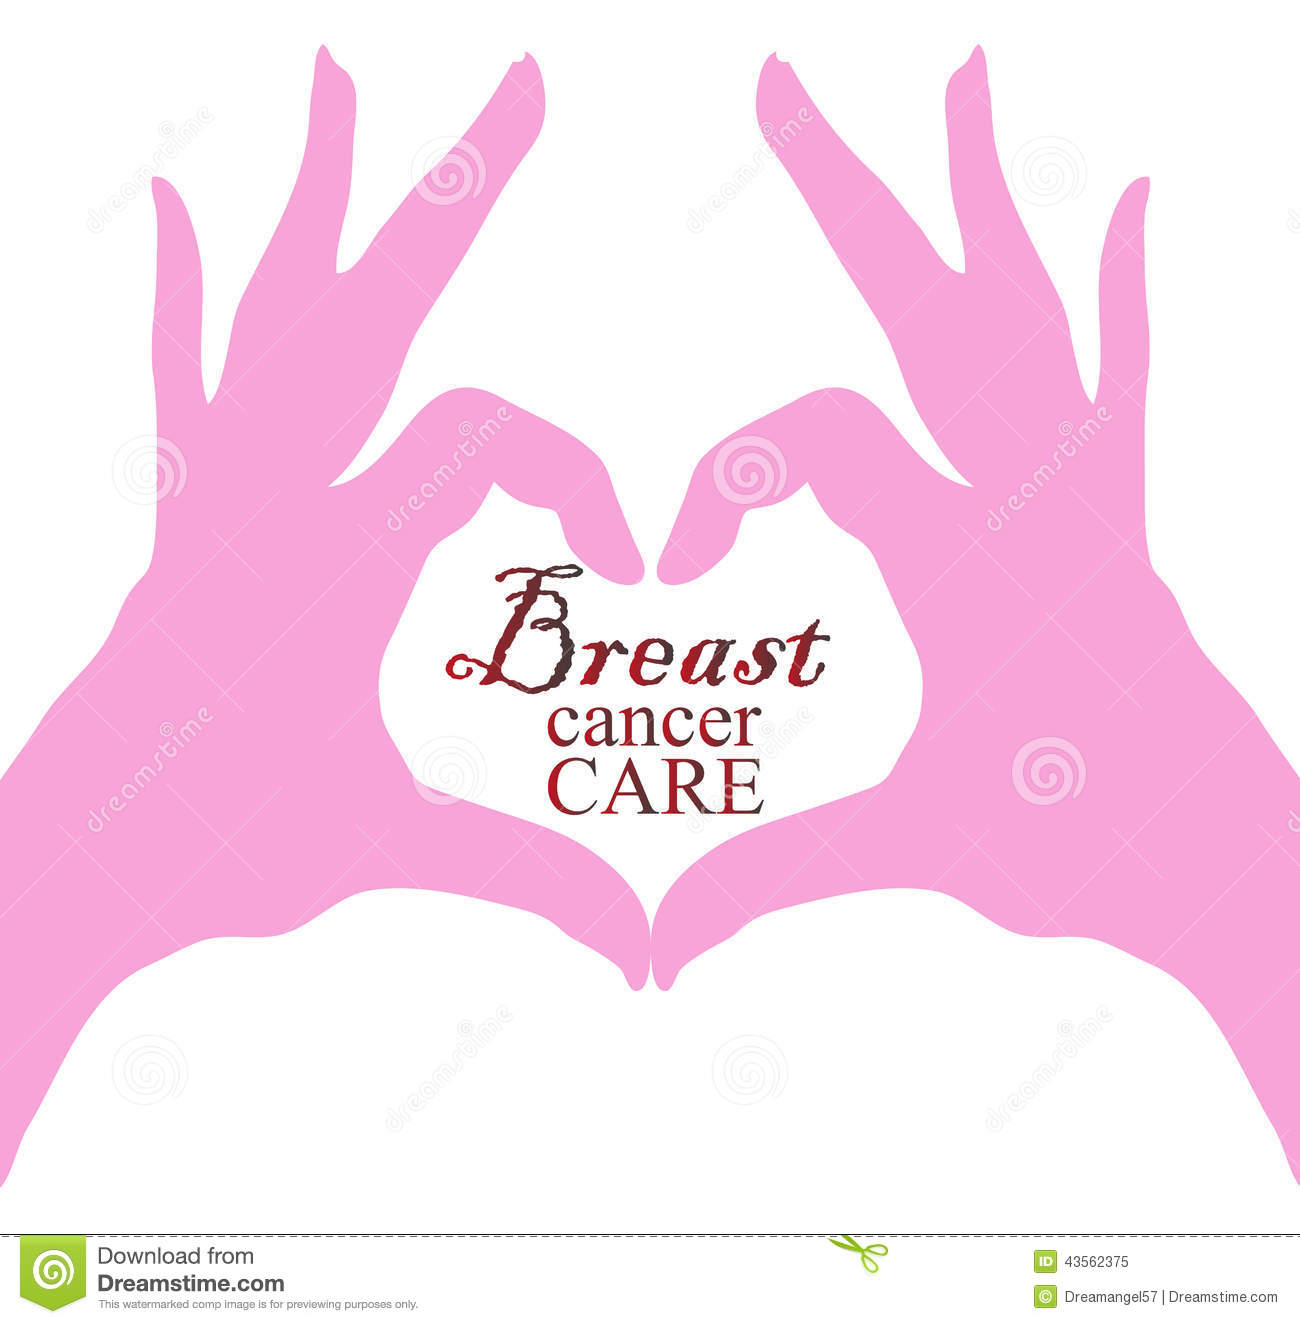 Exercise and breast cancer business plan